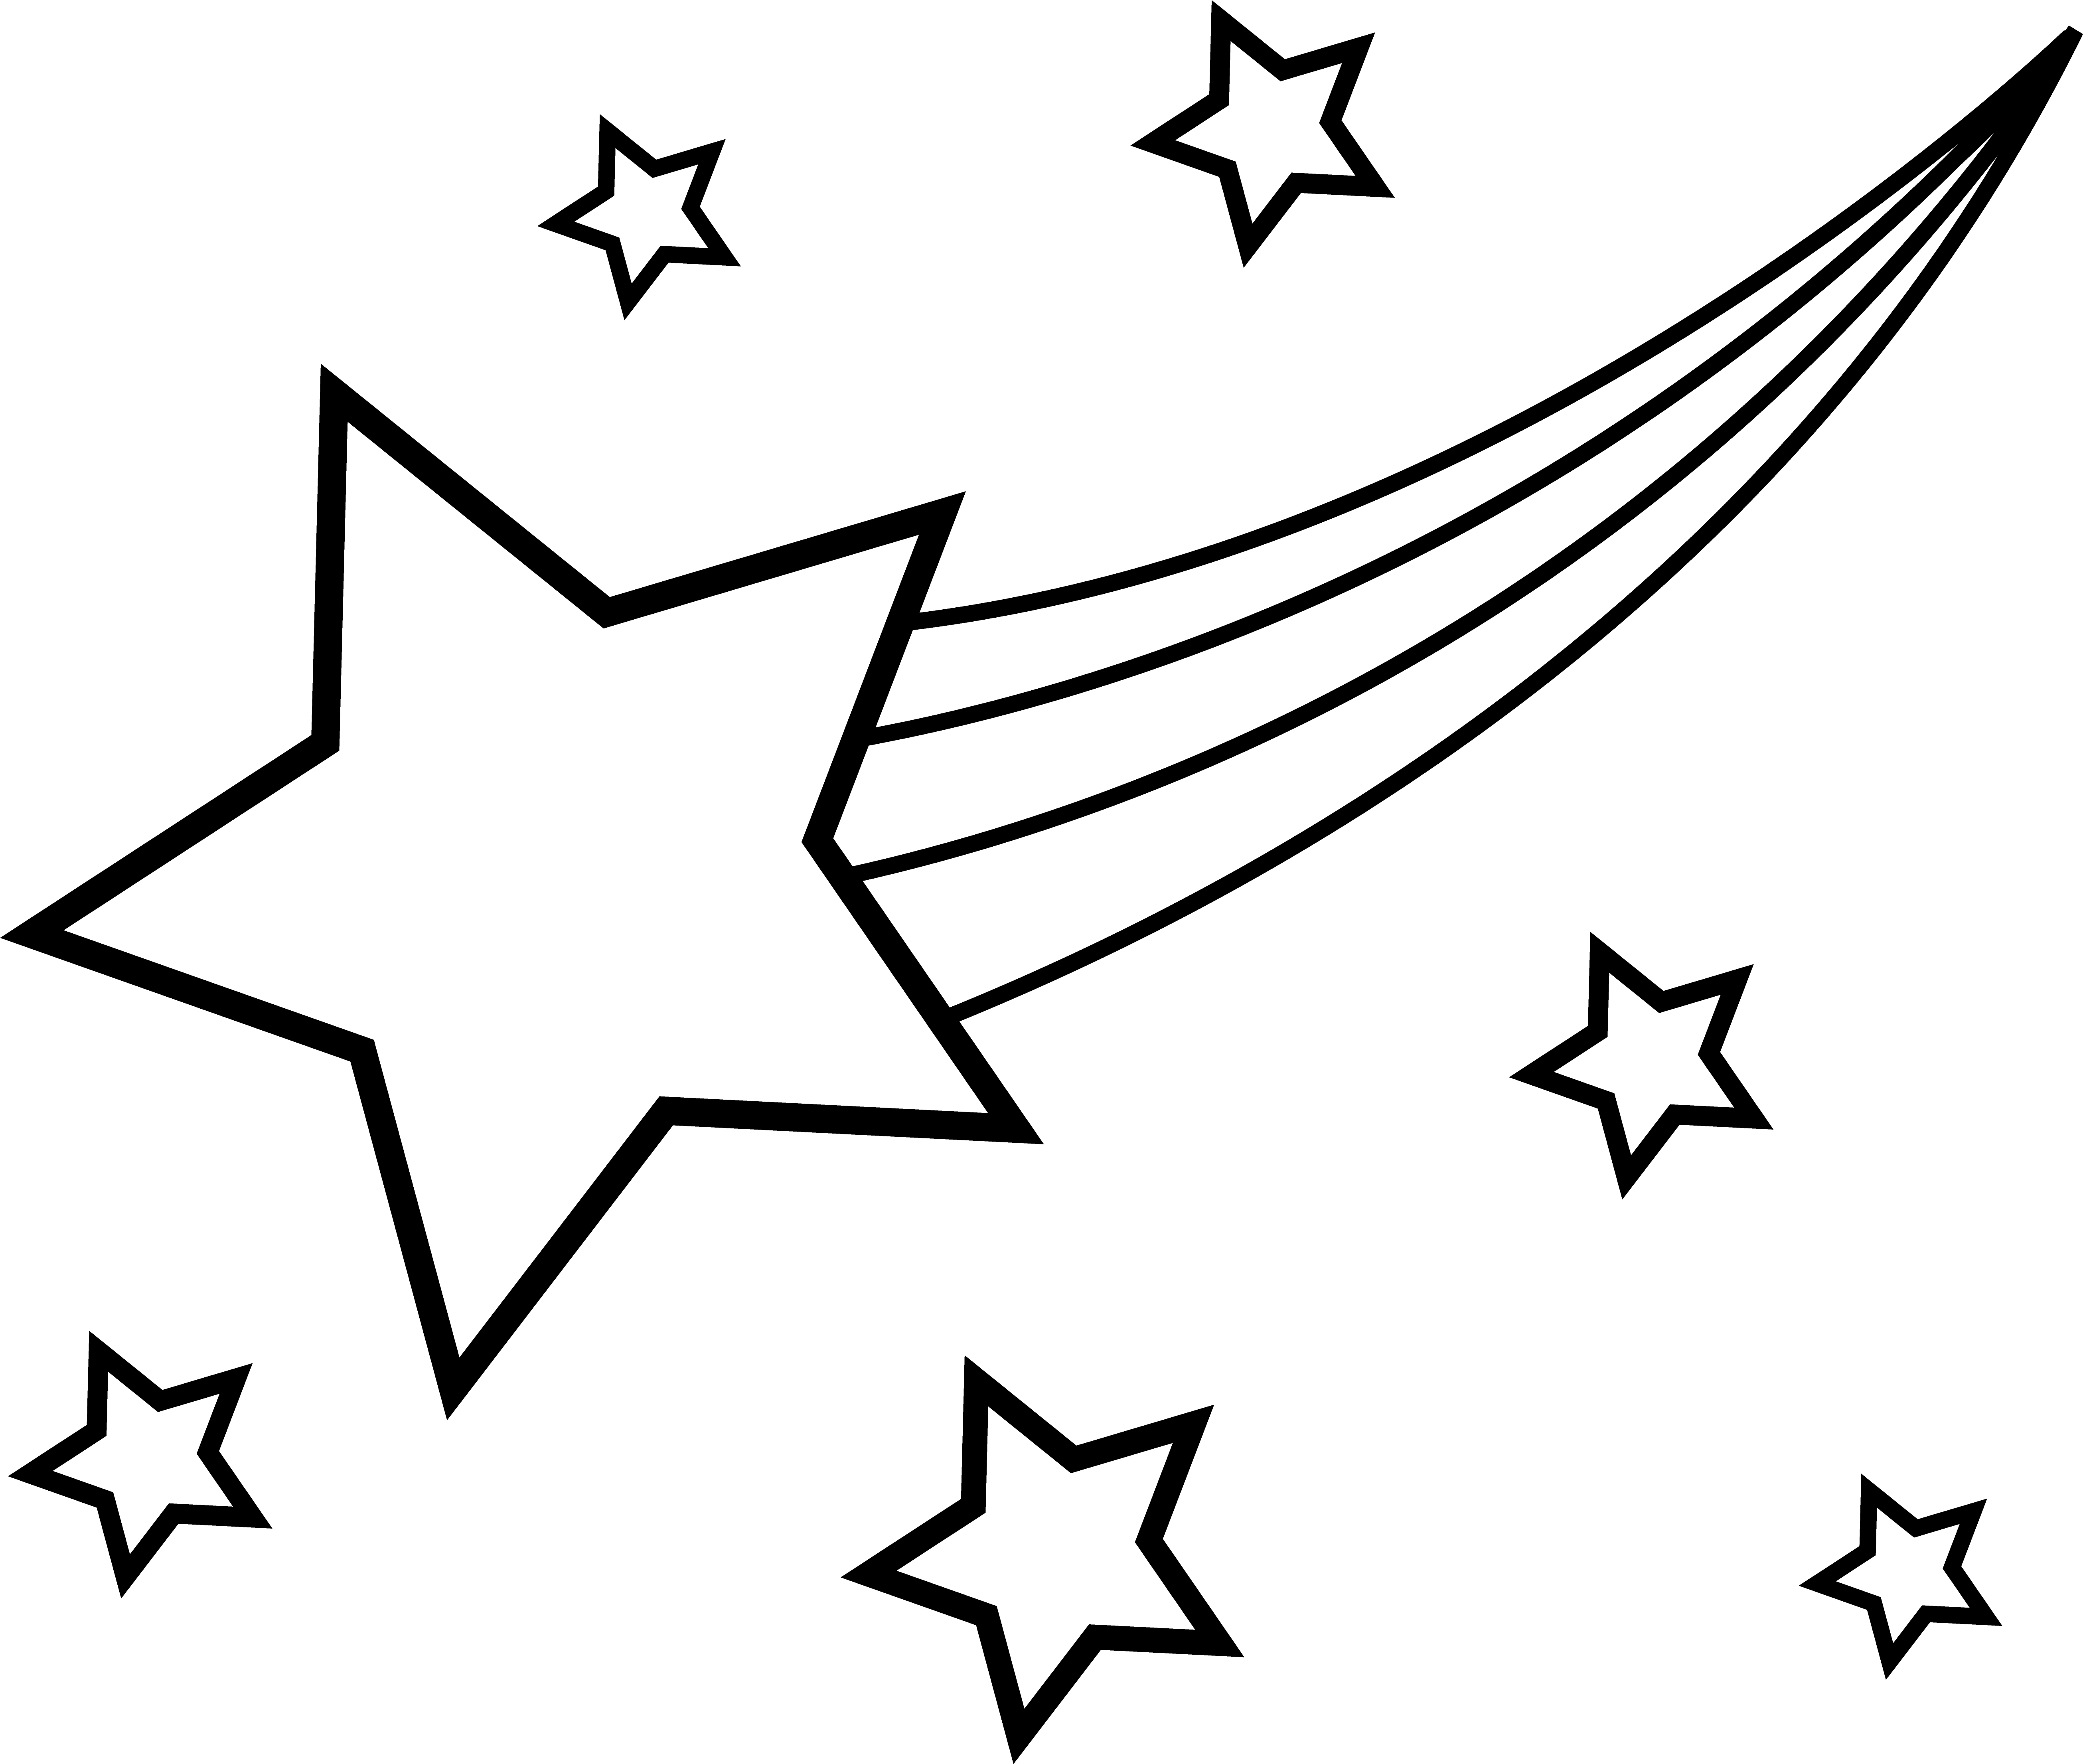 colouring pages of stars stars coloring pages best coloring pages for kids colouring stars of pages